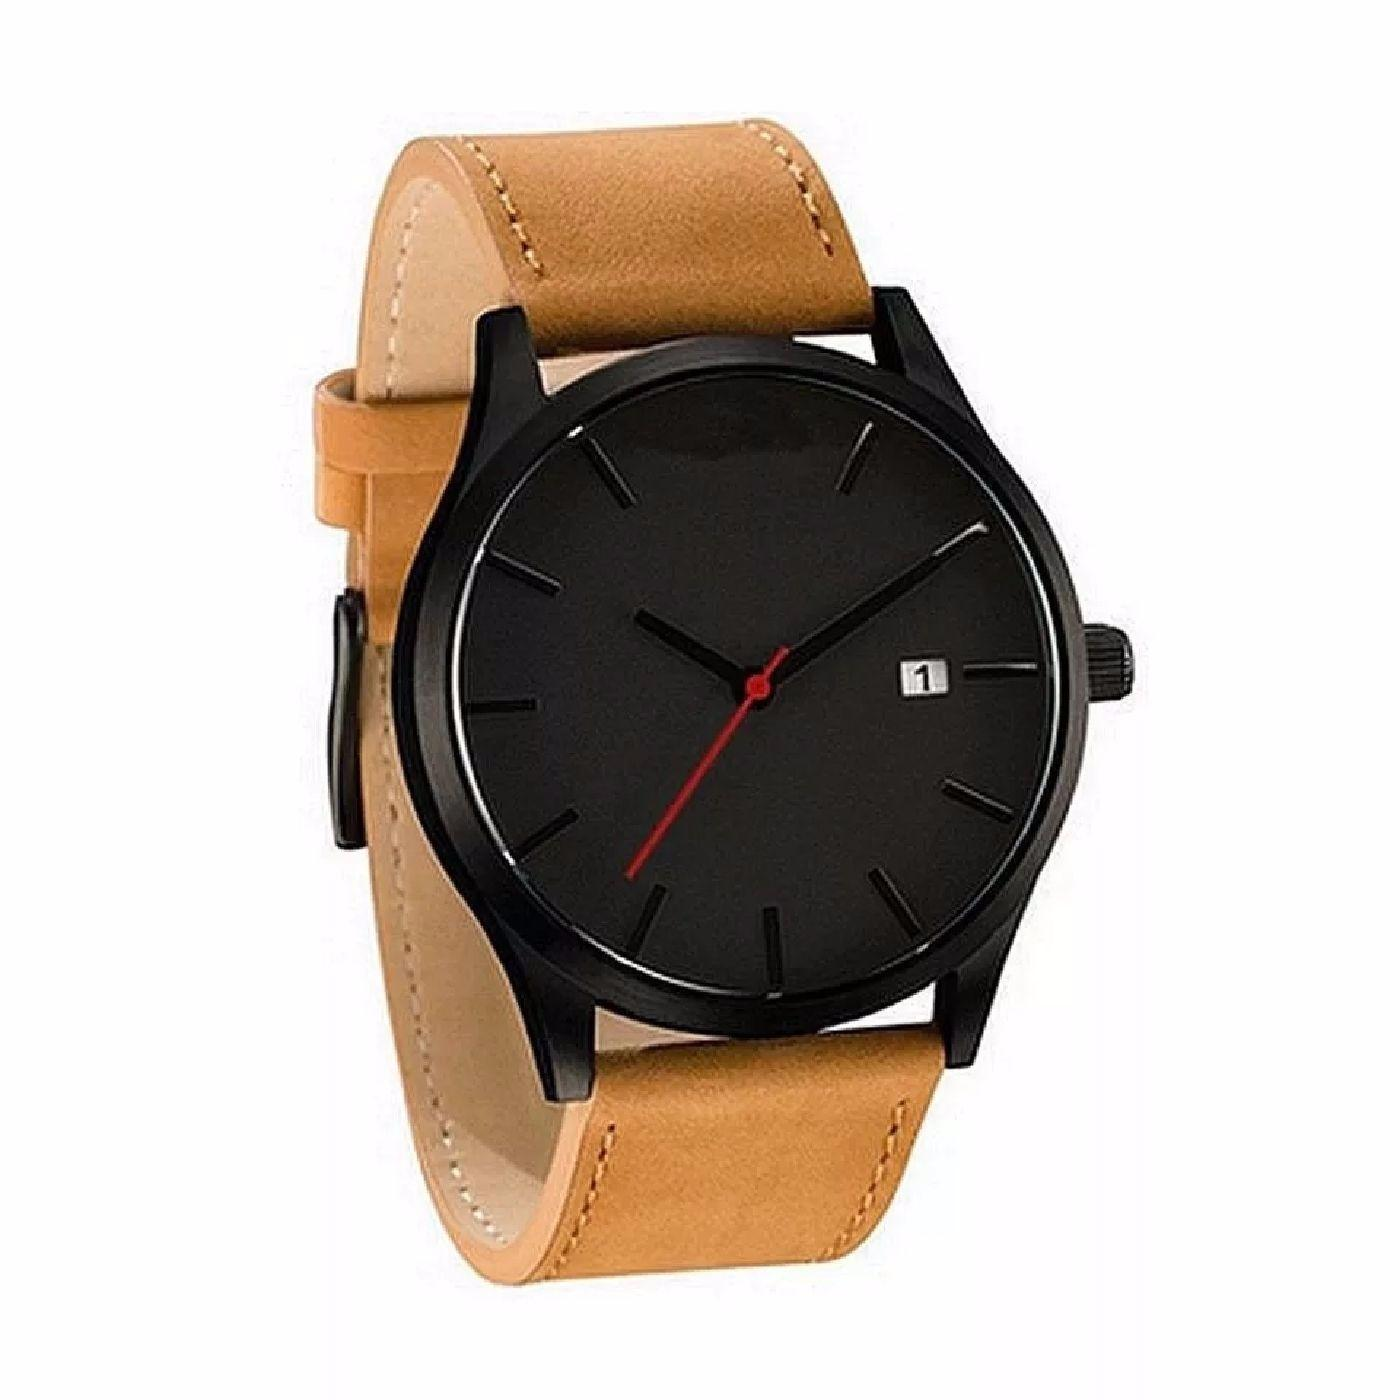 Men's Analog Watch